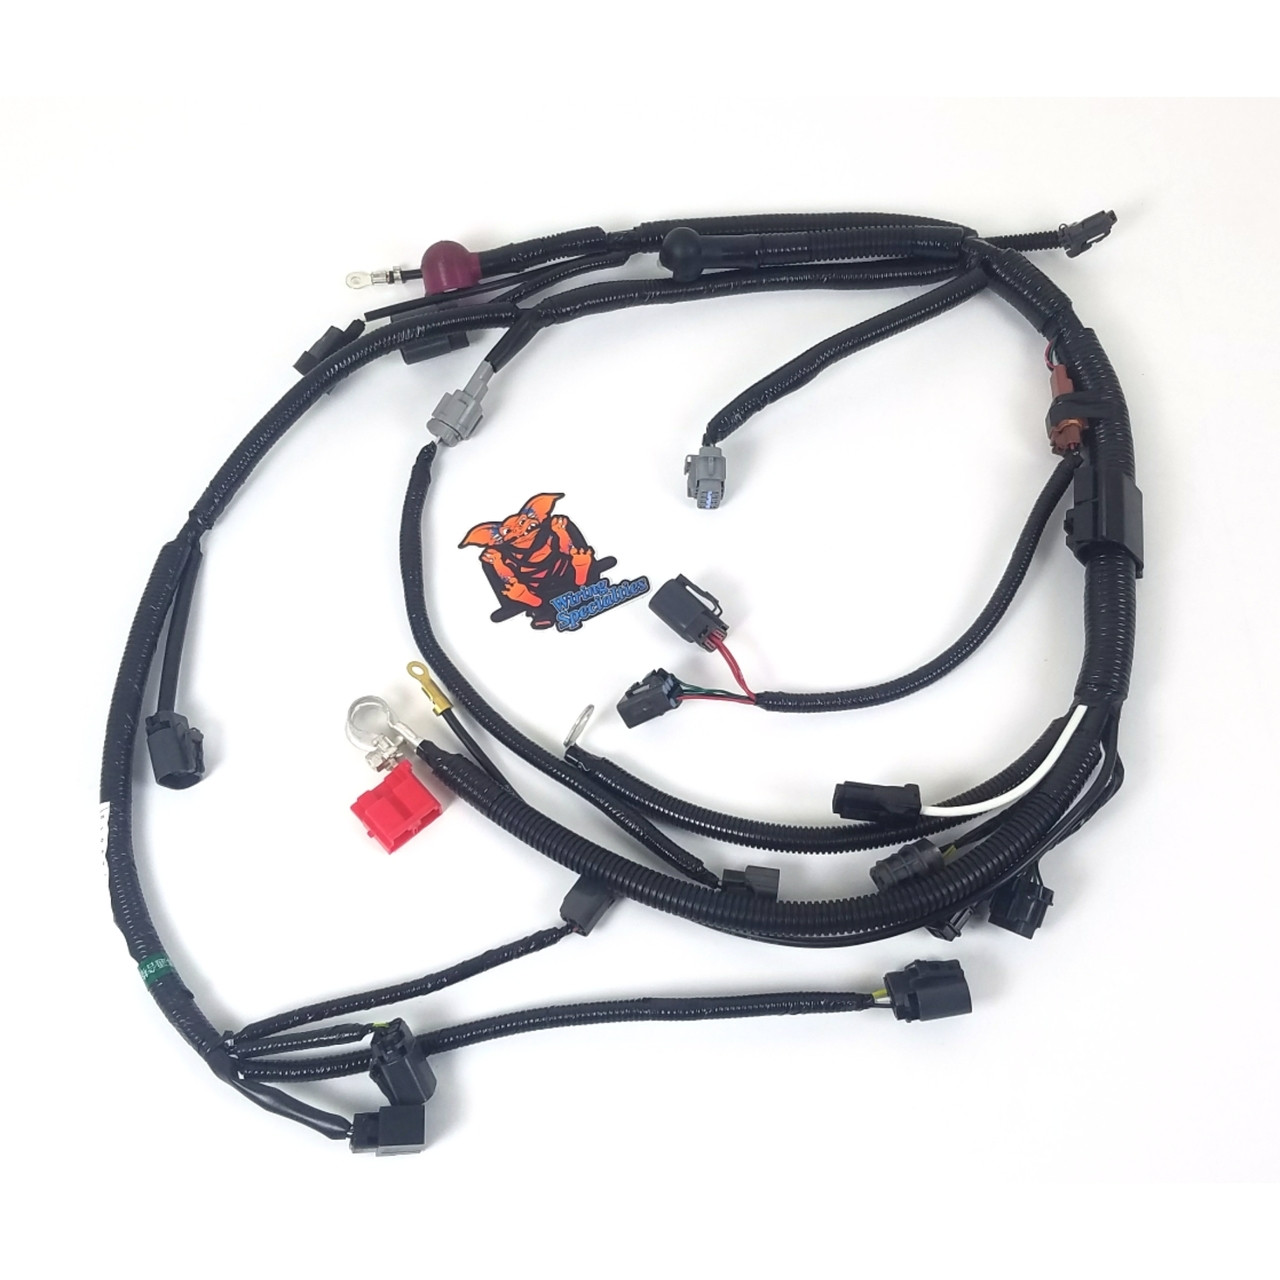 wiring specialties s14 ka24de lower harness for 240sx s14 ka24de wiring harness diagram ka24de wiring harness [ 1280 x 1280 Pixel ]